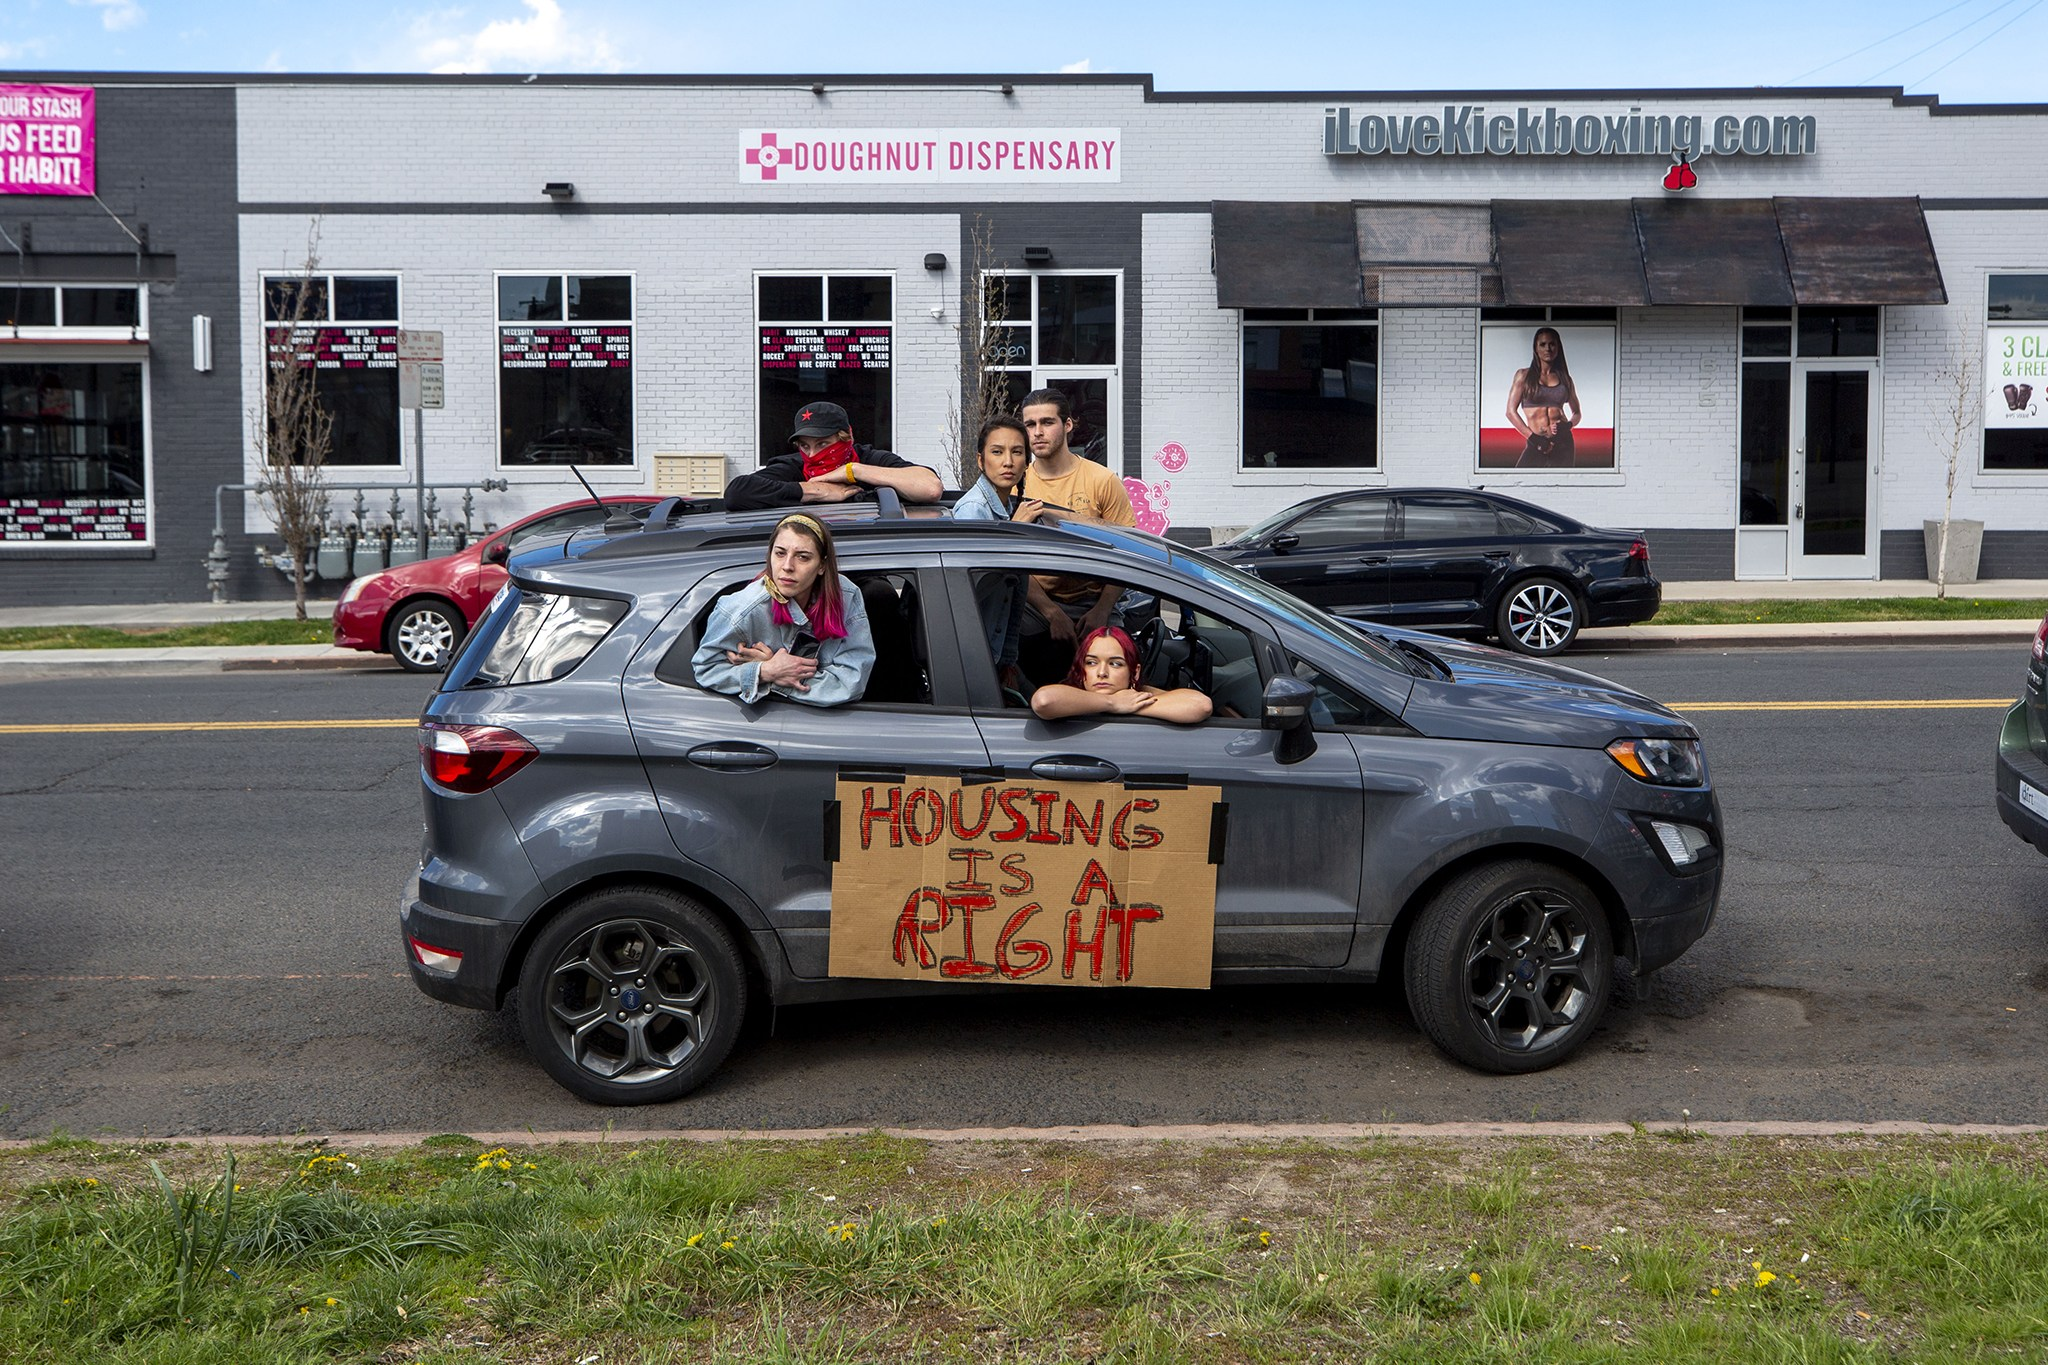 A caravan-style protest demanded a rent and mortgage pause, among other causes, early on in the pandemic. April 25, 2020. (Kevin J. Beaty/Denverite)